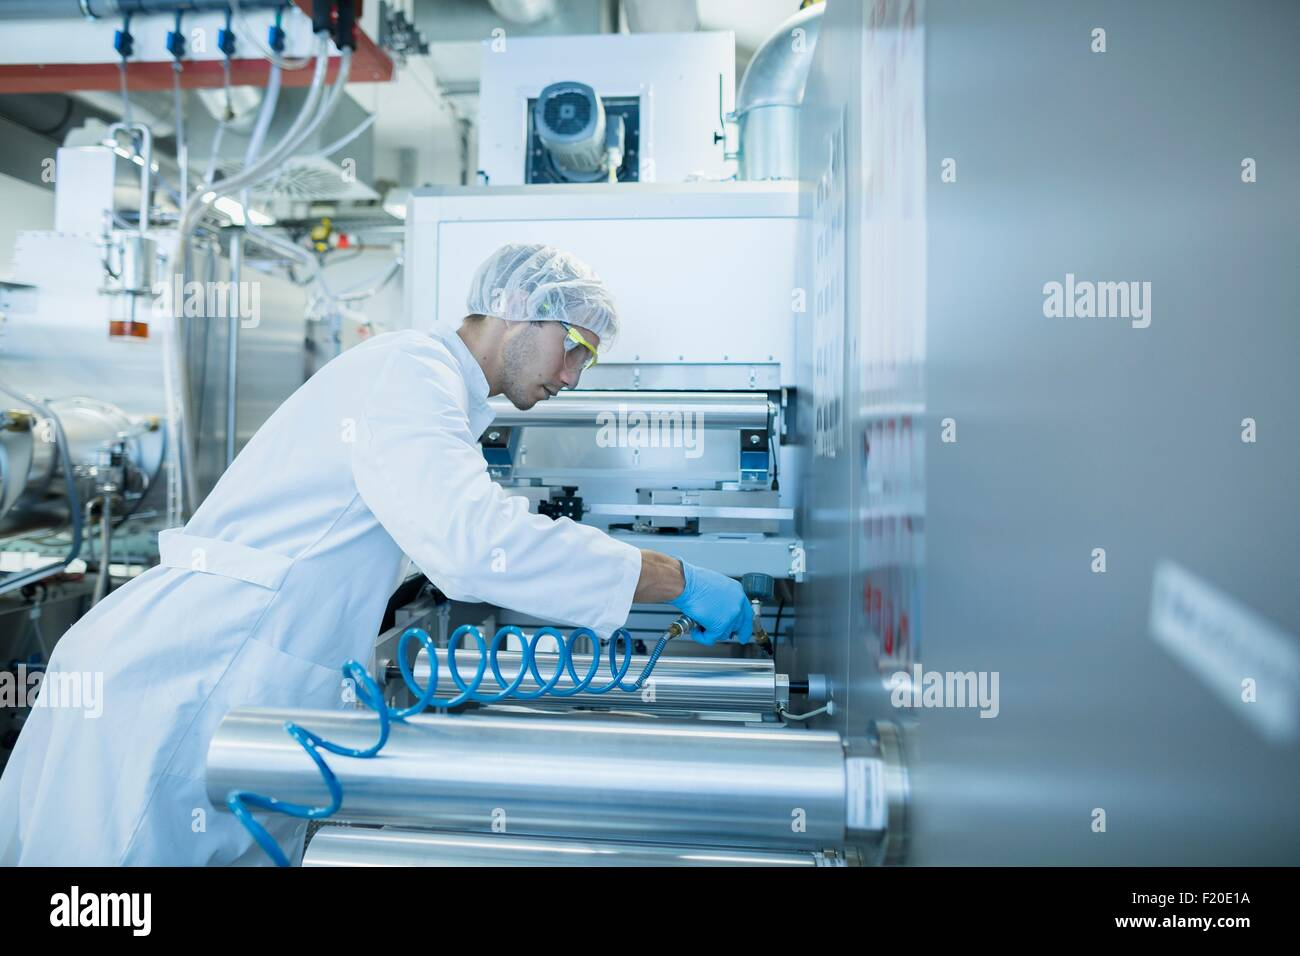 Male scientist power cable in lab cleanroom - Stock Image